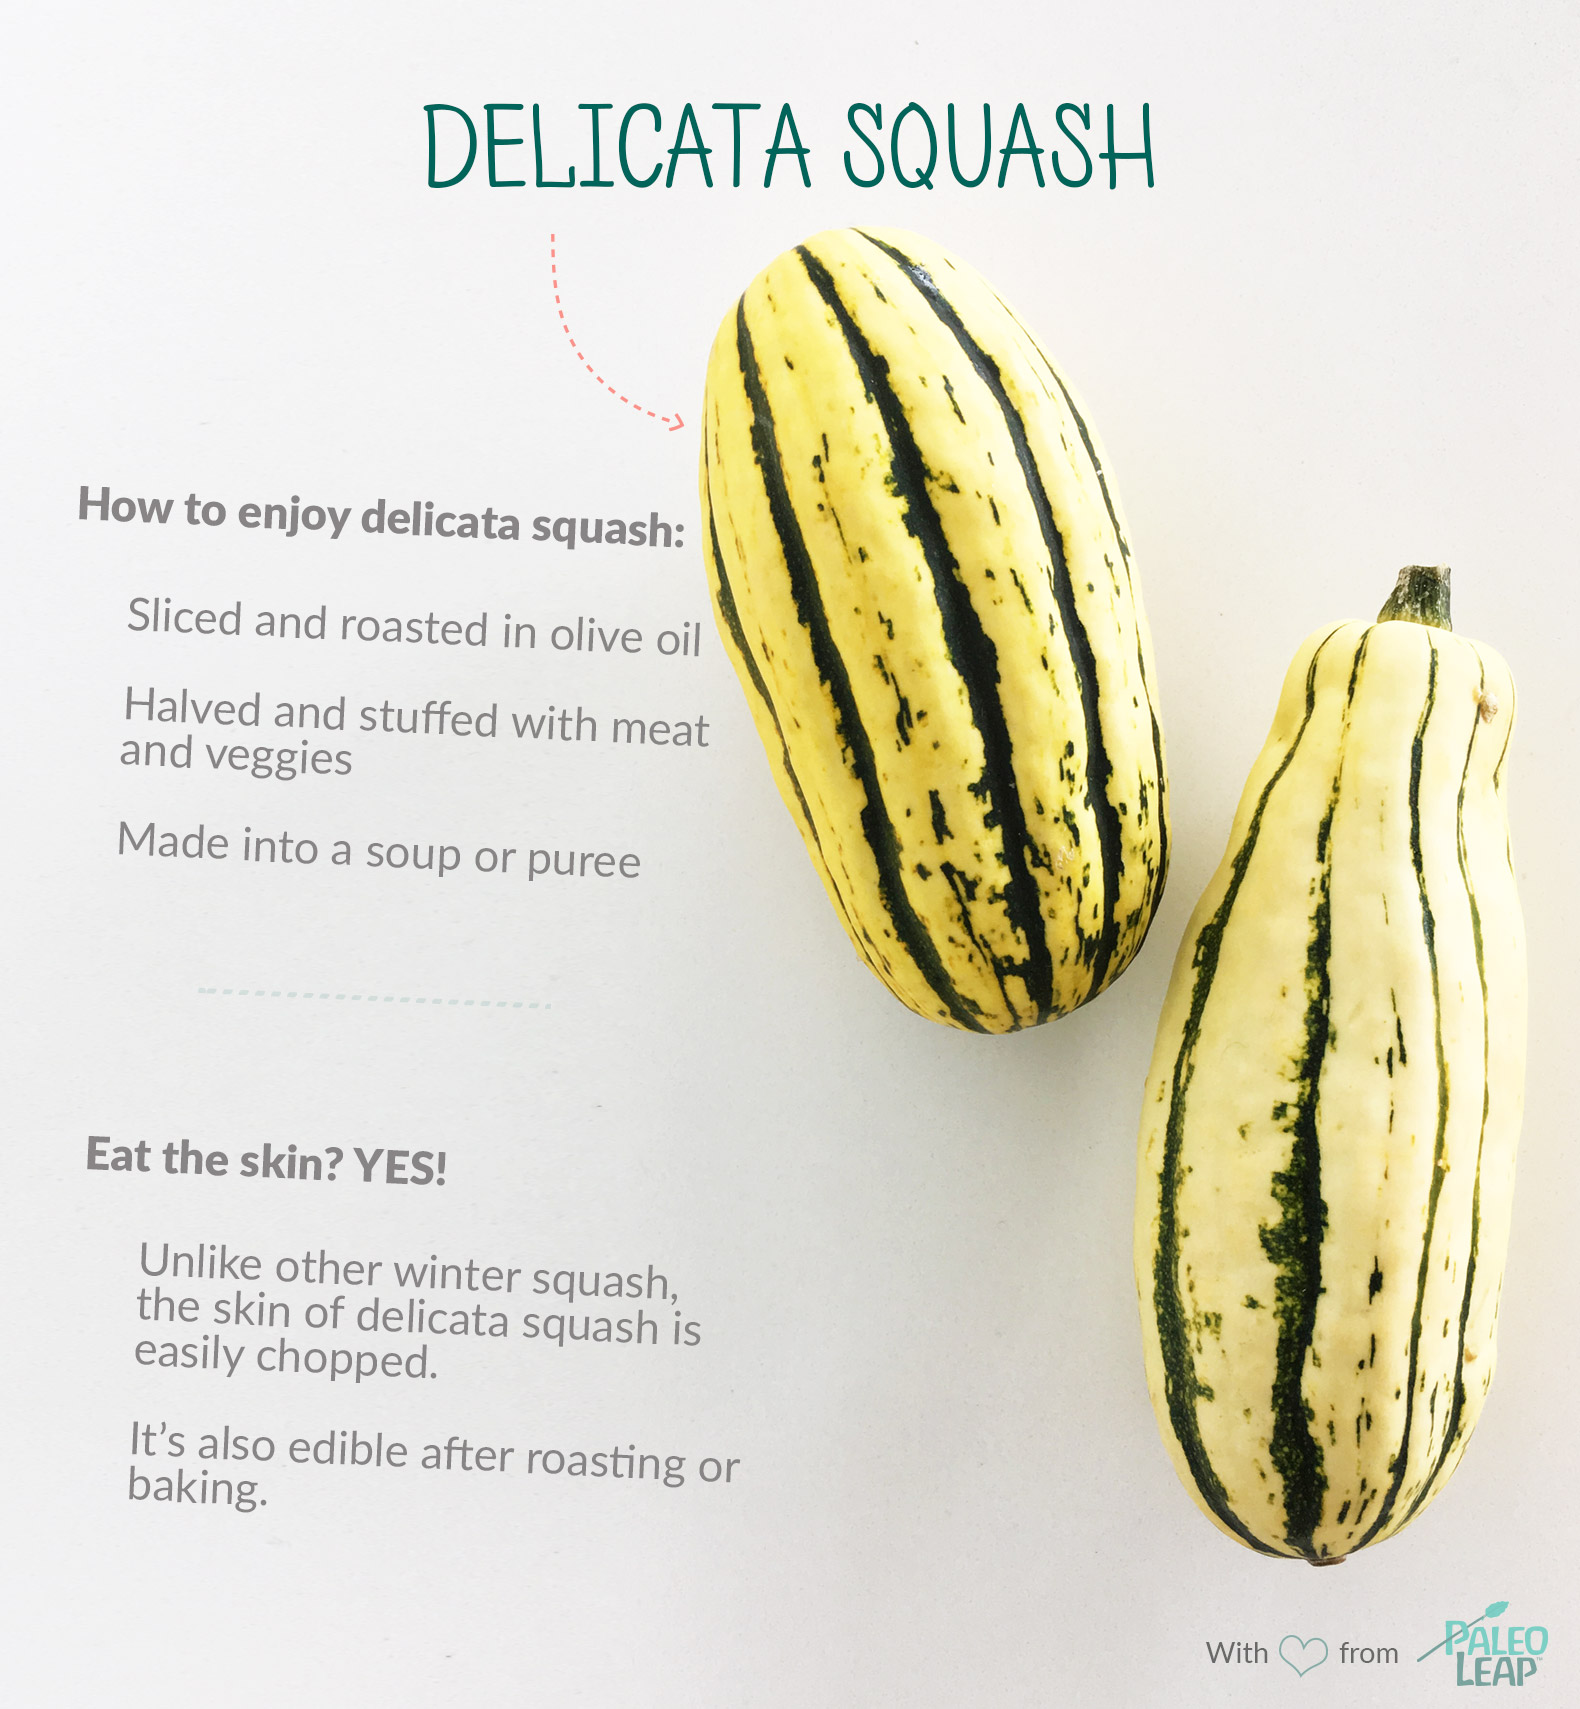 Delicata Squash highlights